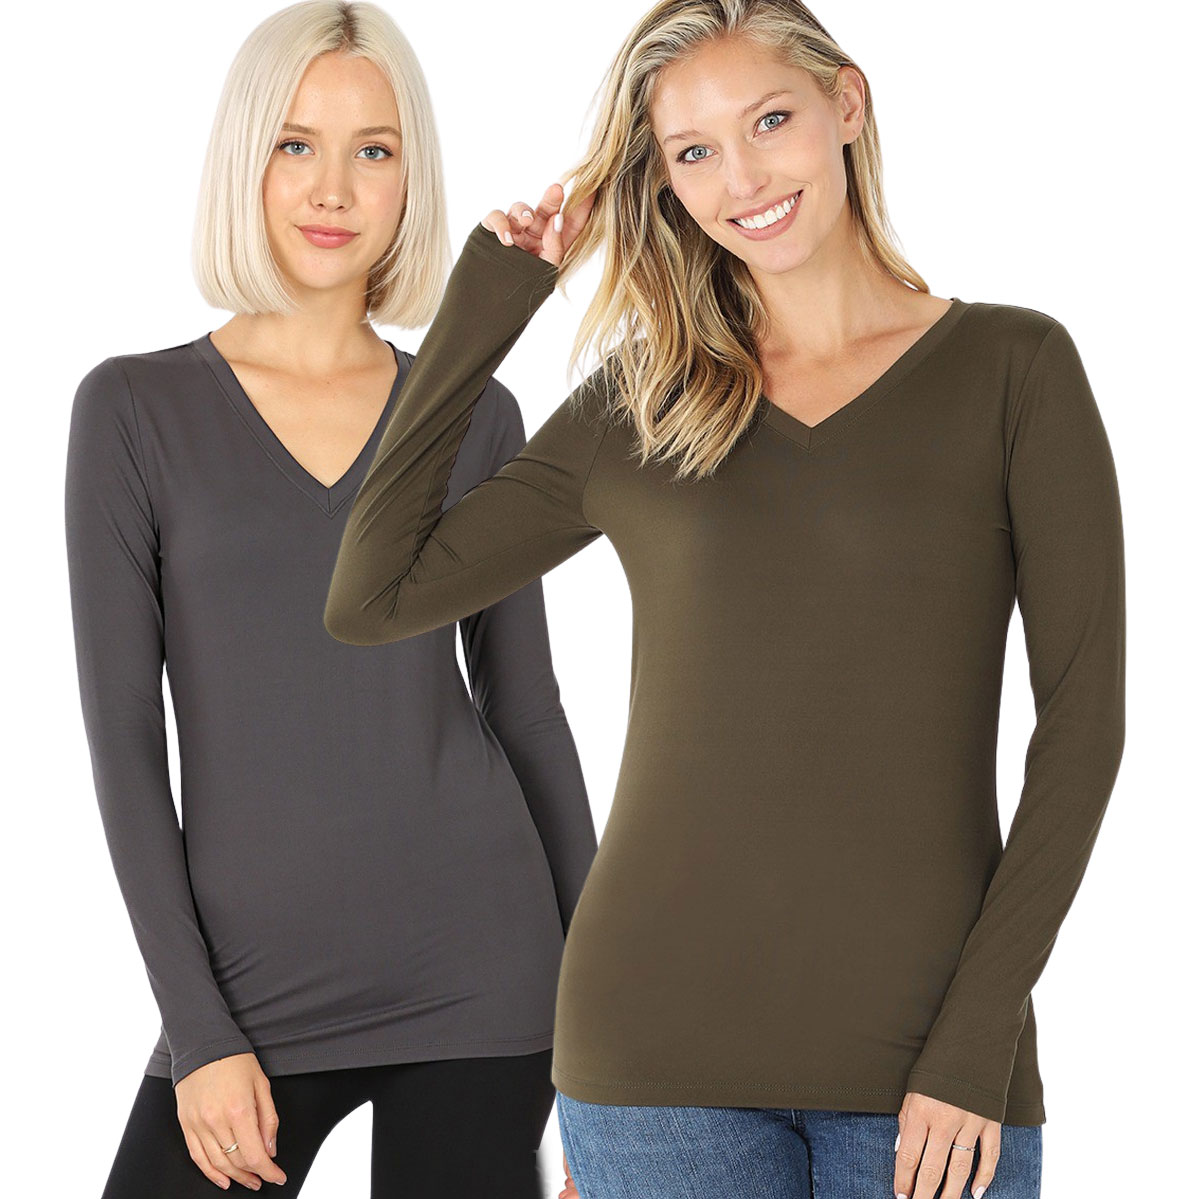 Brushed Fiber - V-Neck Long Sleeve Top 2054